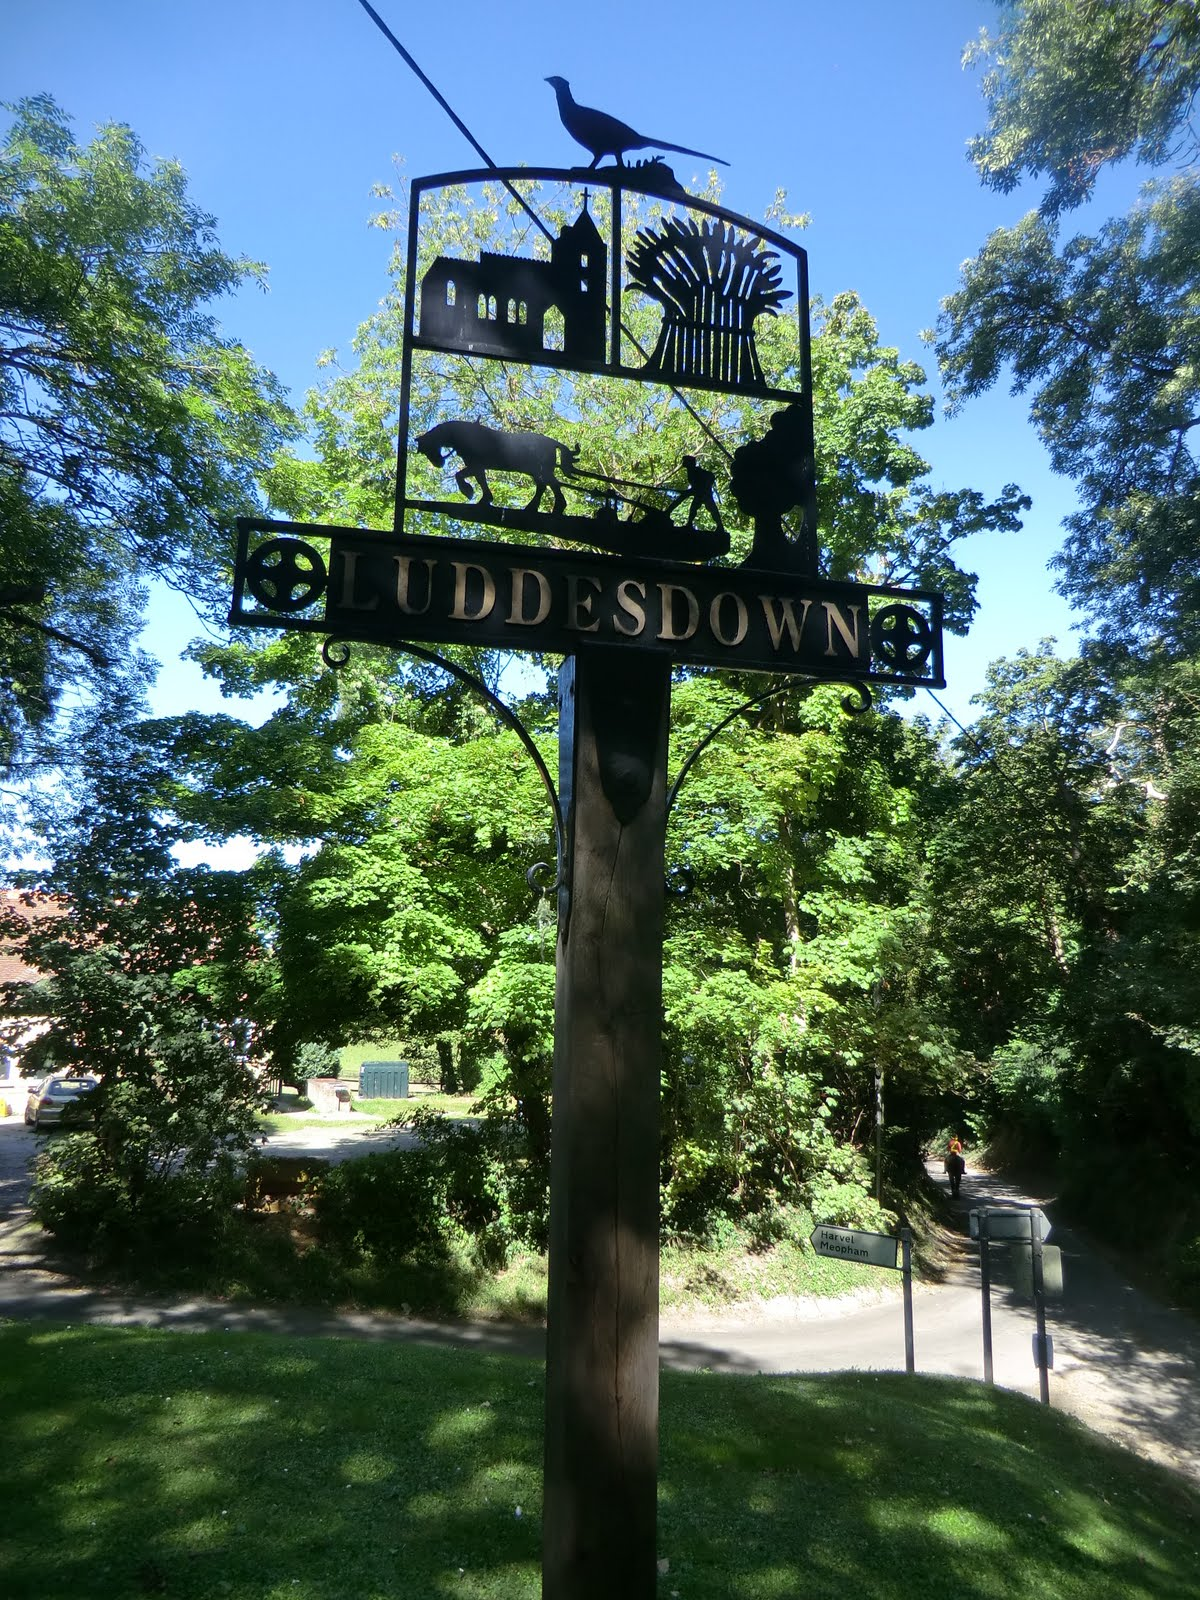 CIMG3894 Luddesdown village sign